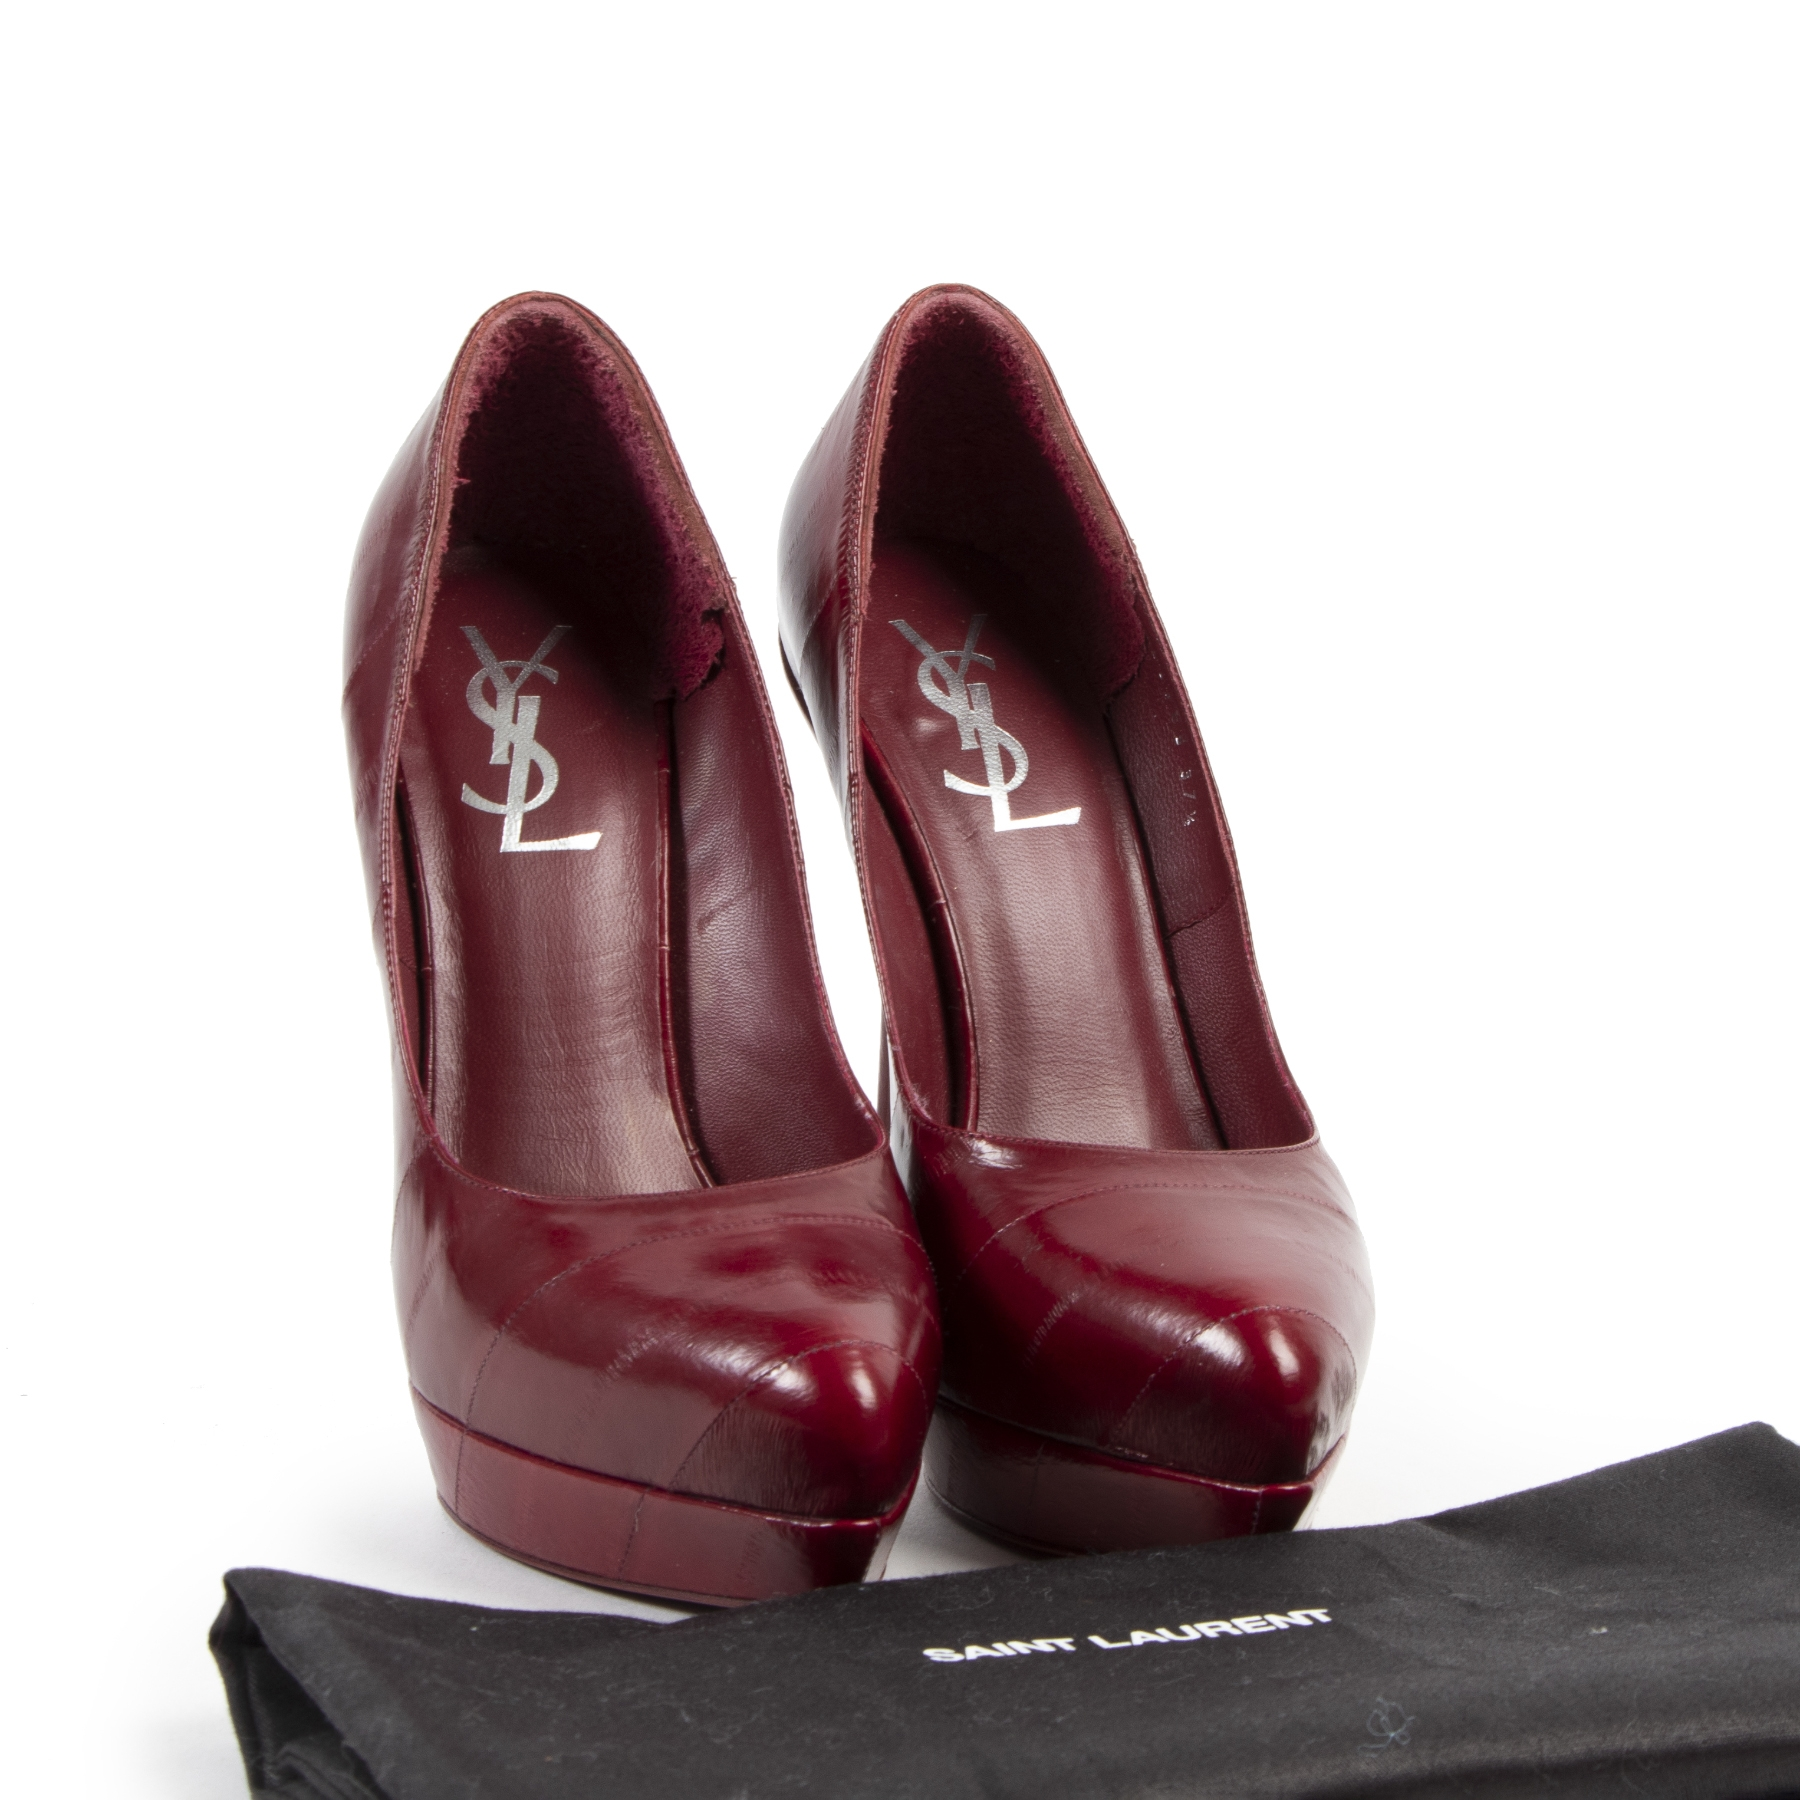 Authentic secondhand Saint Laurent Burgundy Leather Platform Heels - Size 37,5 designer shoes bags fashion luxury vintage webshop safe secure online shopping